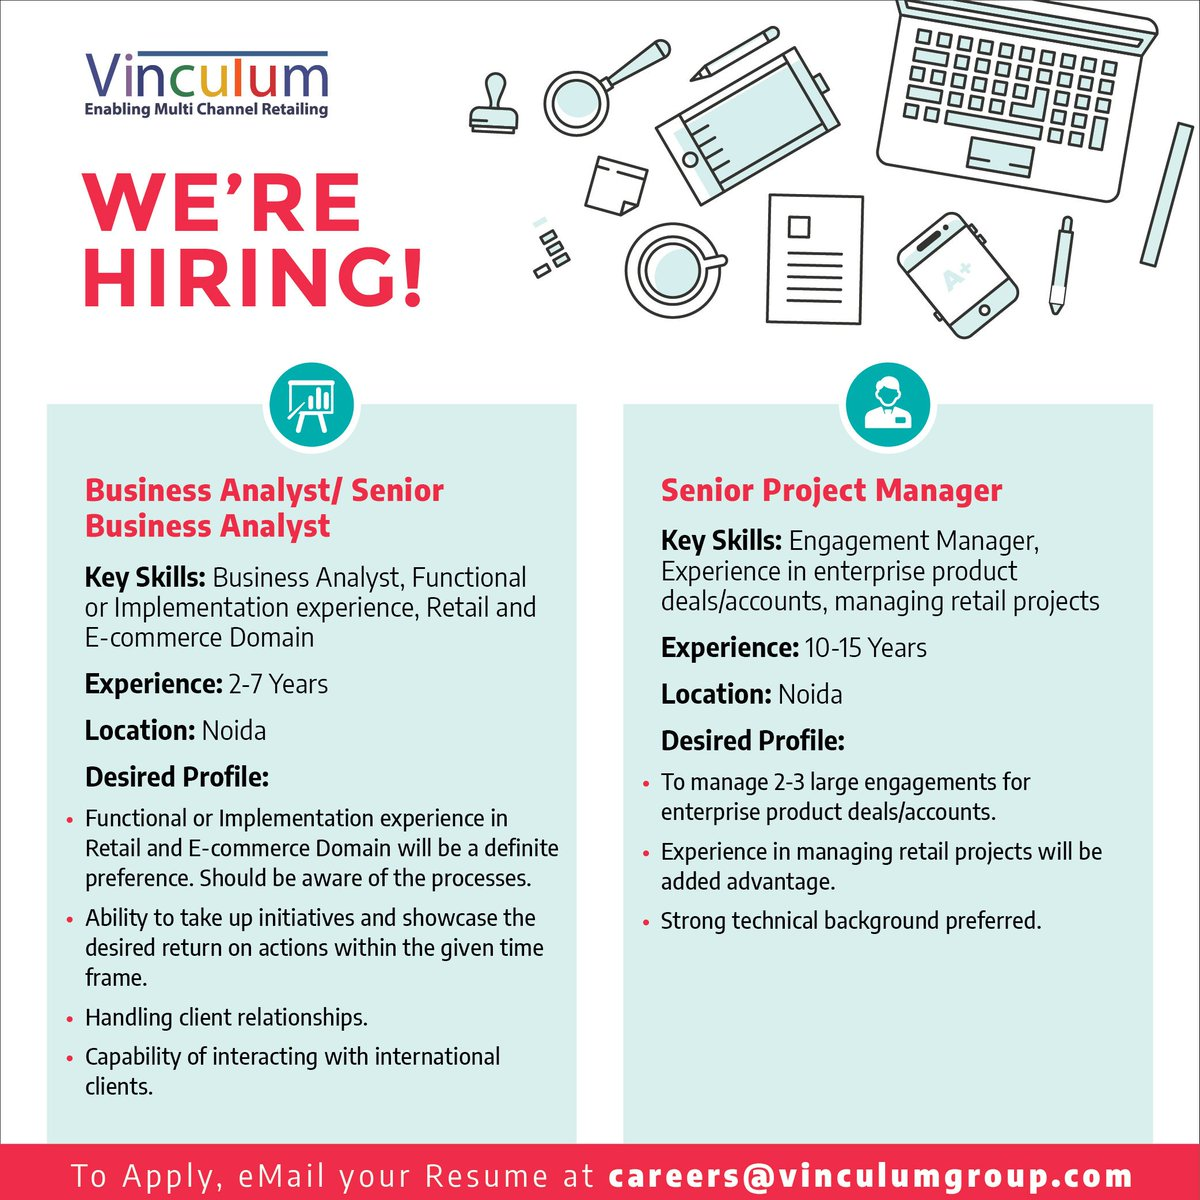 A Business Analyst Or Senior Project Manager For Latest Openings  Announcements Follow Us At Vinculum_It Or